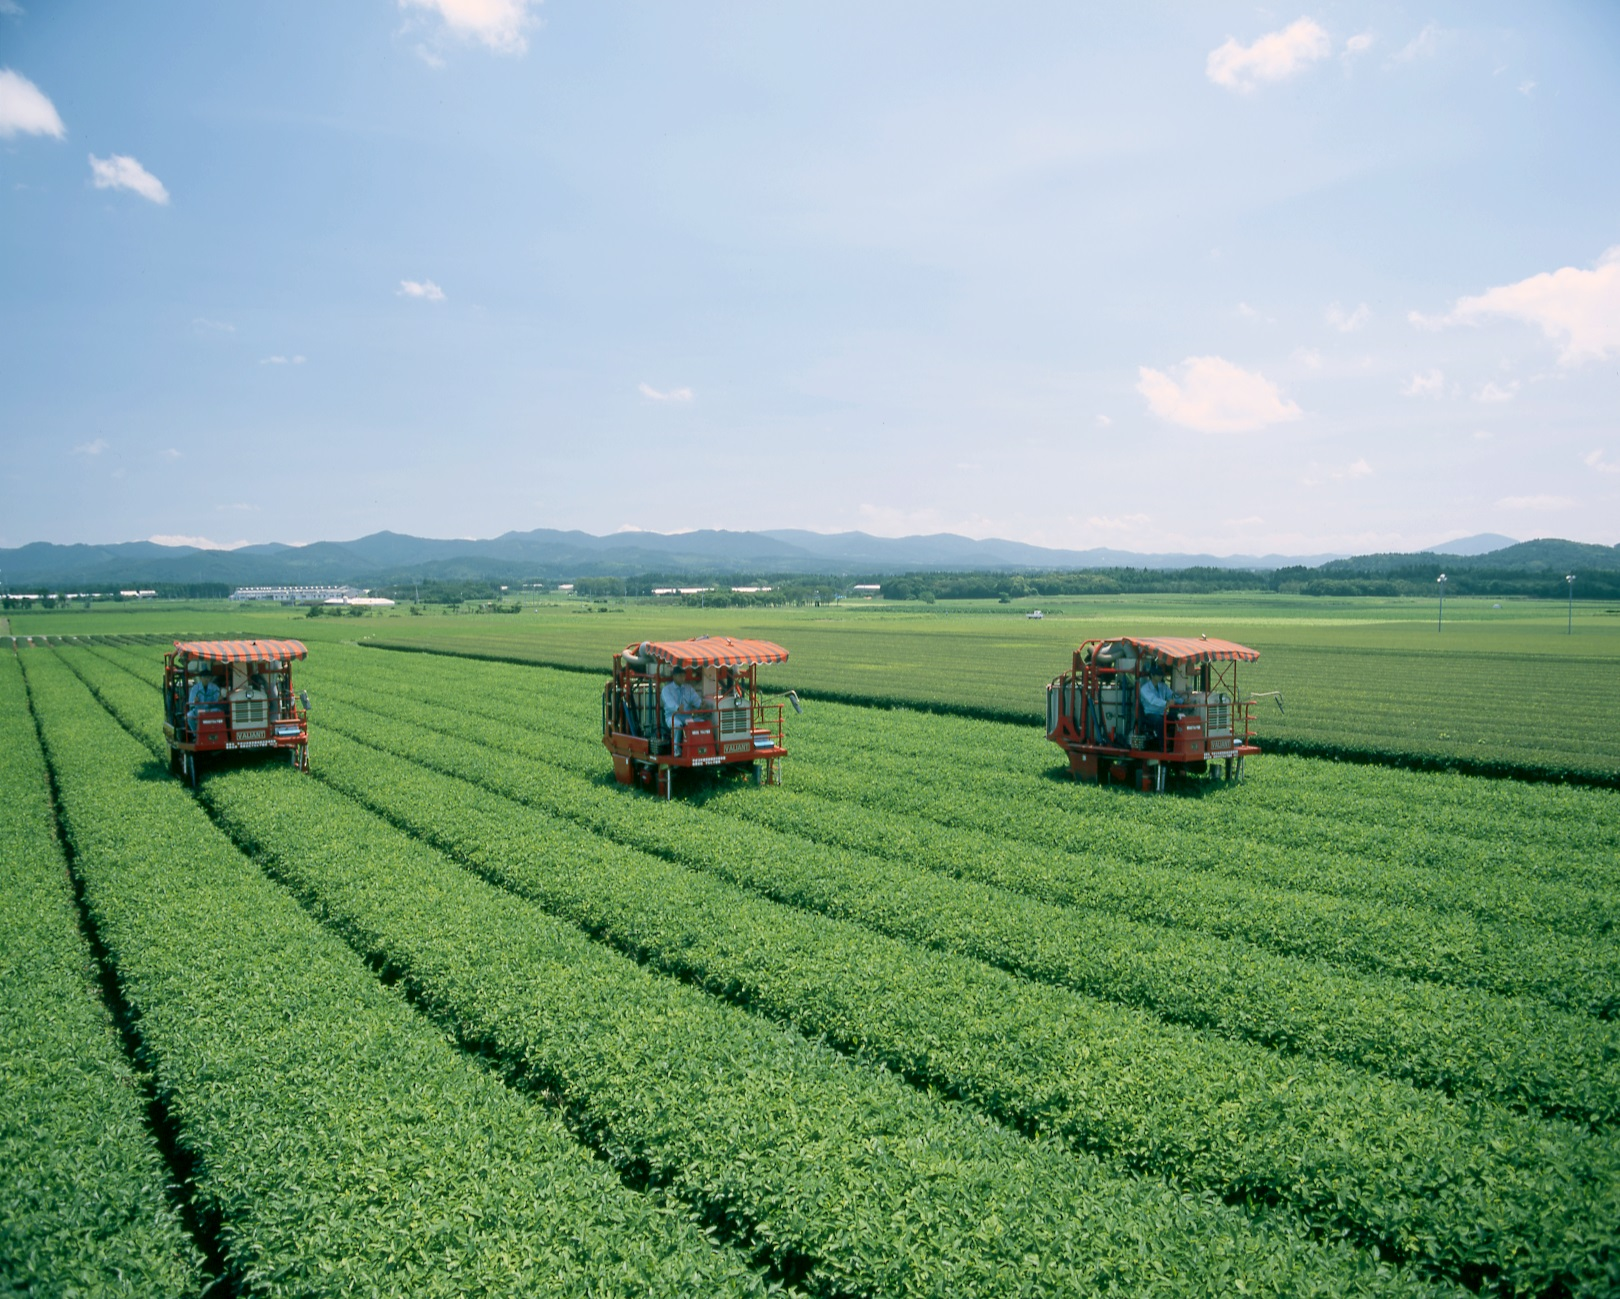 Our Green tea farm